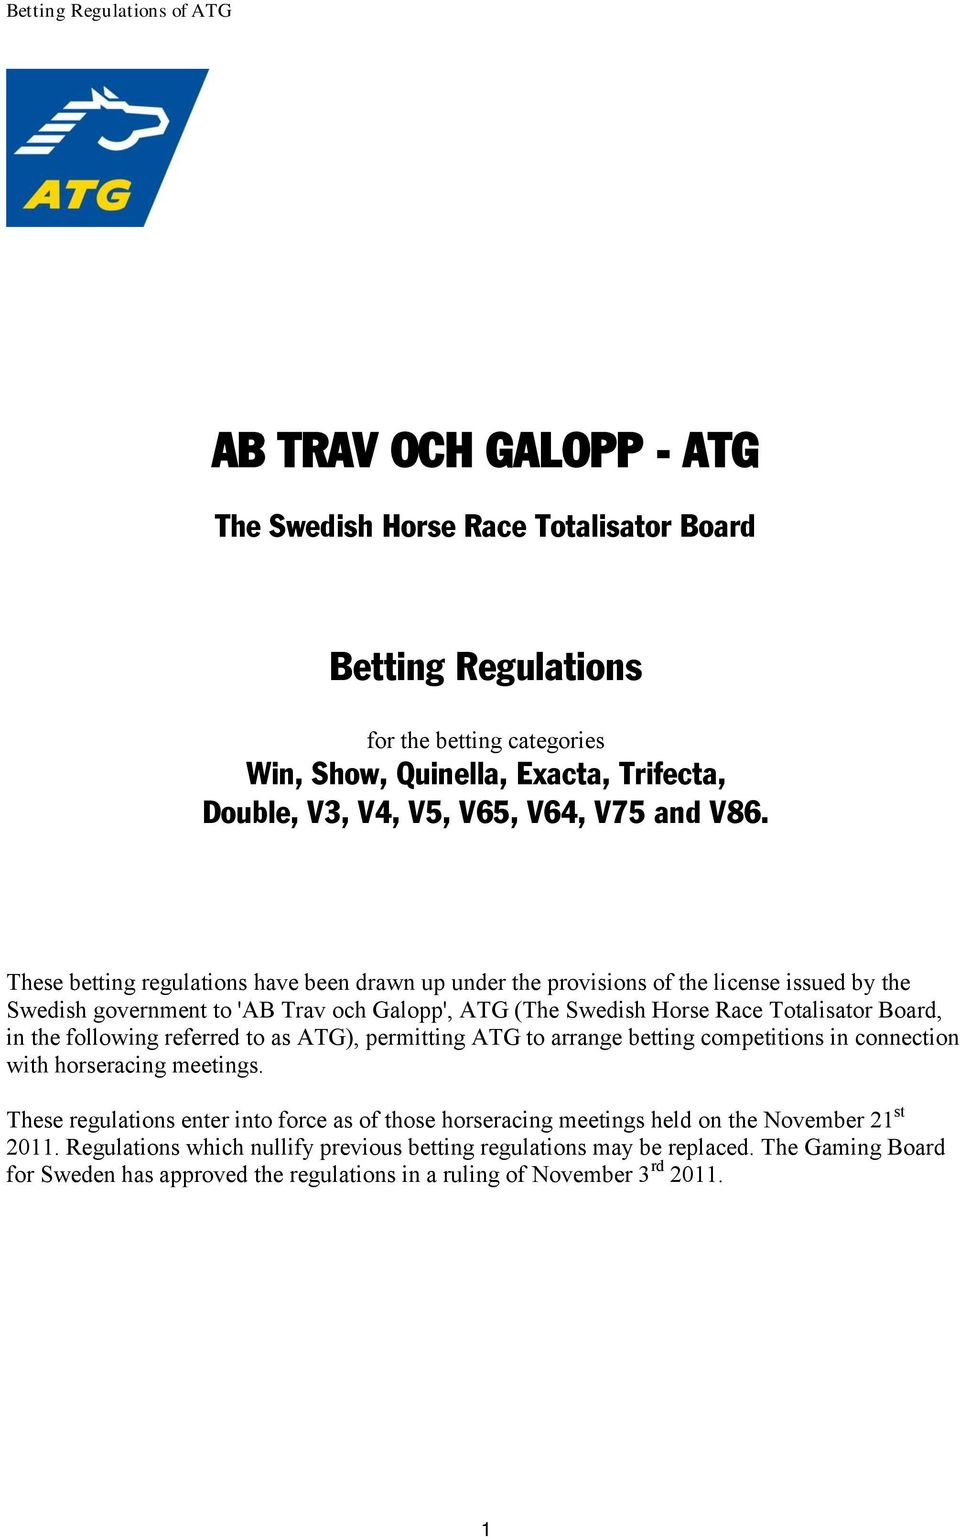 following referred to as ATG), permitting ATG to arrange betting competitions in connection with horseracing meetings.